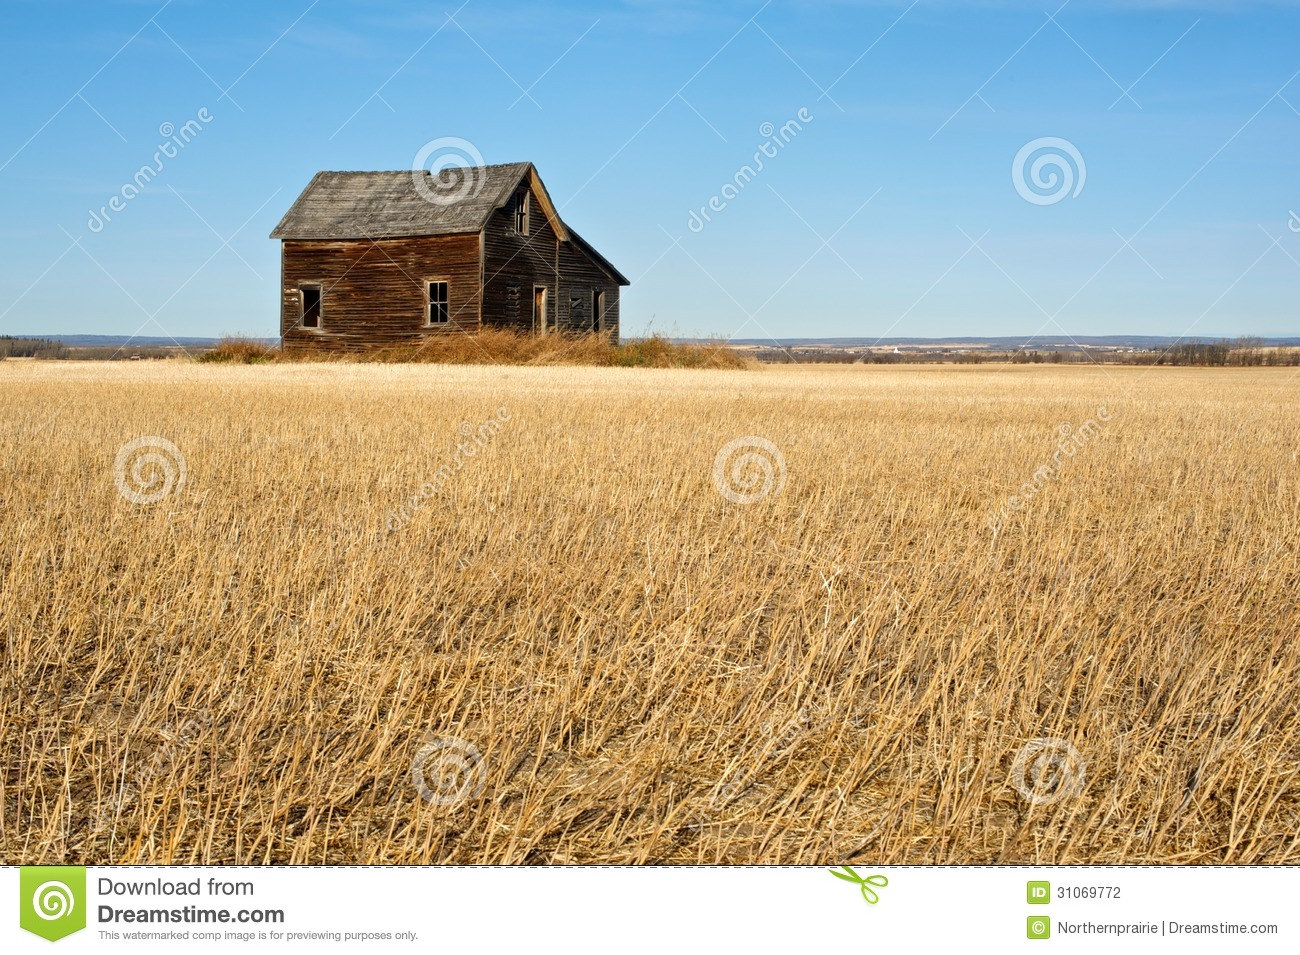 Abandoned House In Harvested Wheat Field In Fall Stock graphy Image